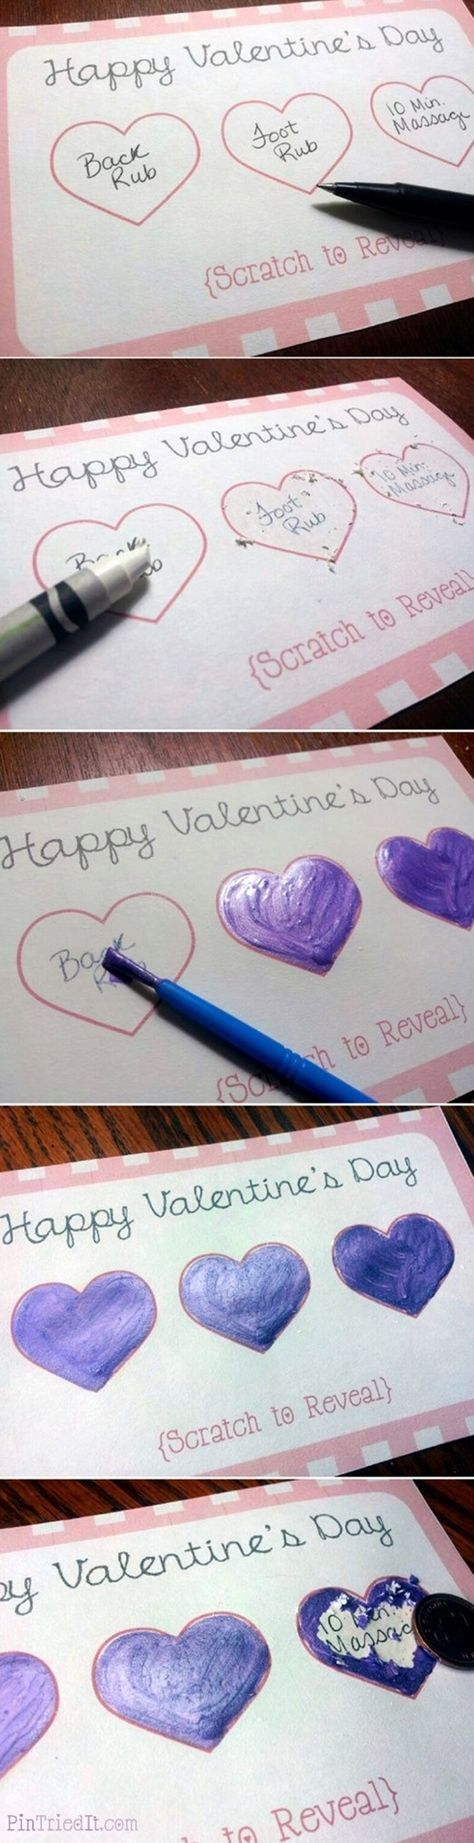 101 Homemade Valentines Day Ideas for Him that\'re really CUTE ...